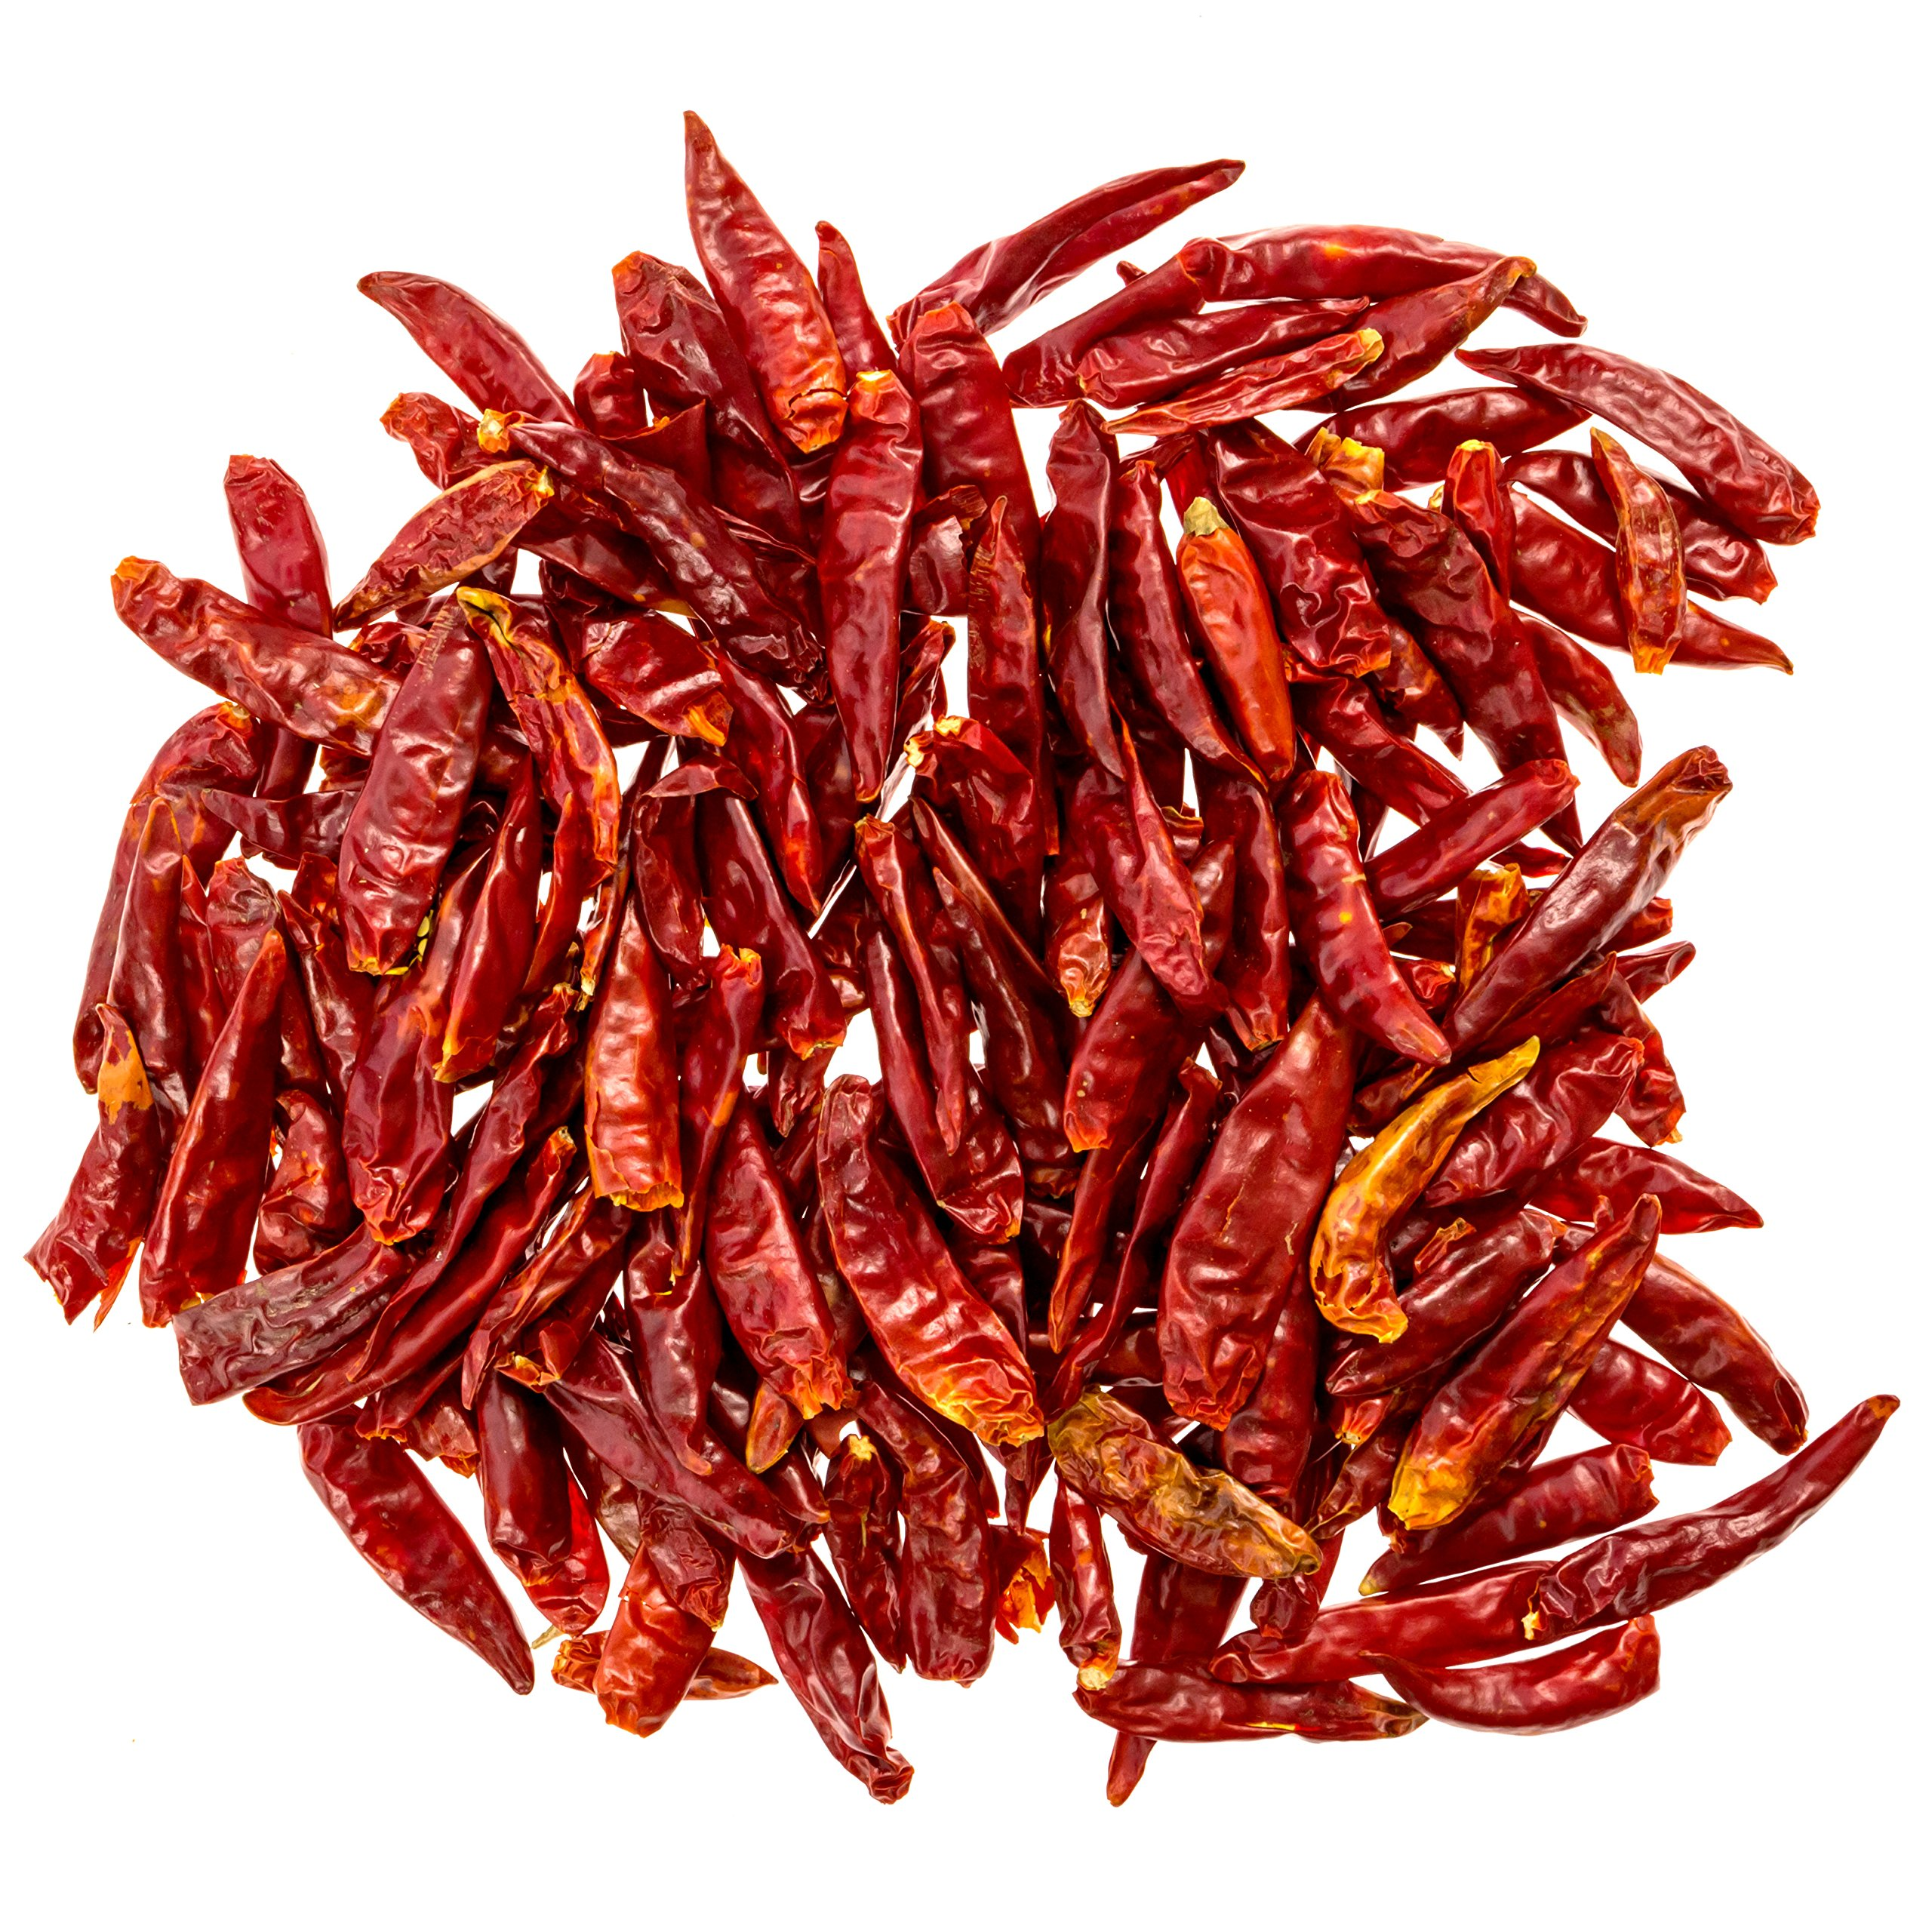 THREE SQUIRRELS Szechuan Whole Dried Chilies, Chinese Dried Red Chili Peppers, Making Hot Chili Oil and Sichuan Chongqing Hotpot, Premium Quality, 4 oz.